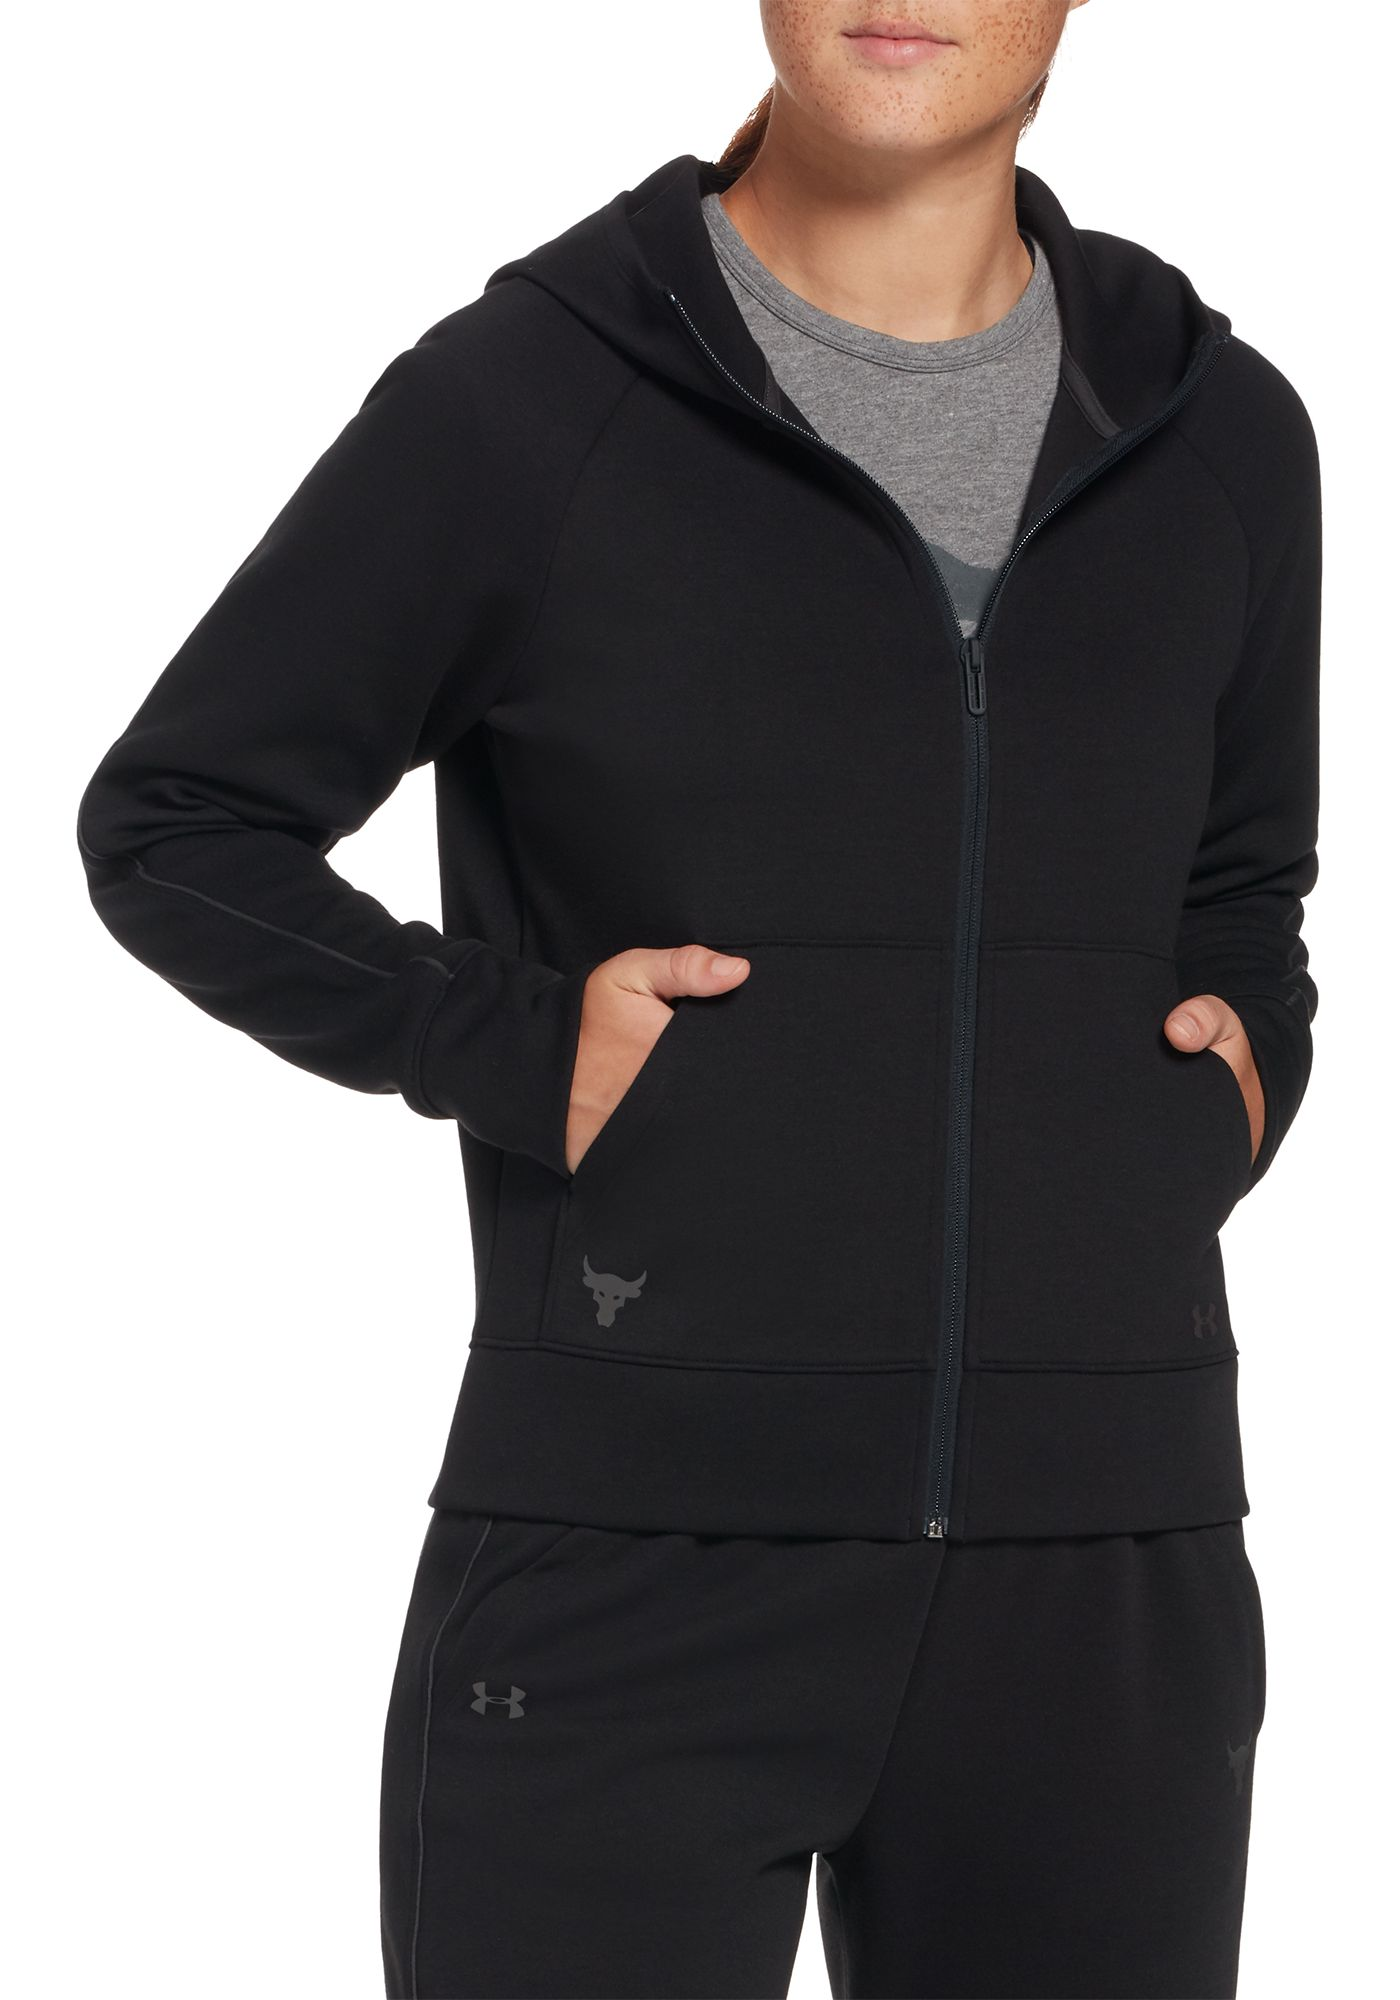 Under Armour Women's Project Rock Double Knit Hoodie